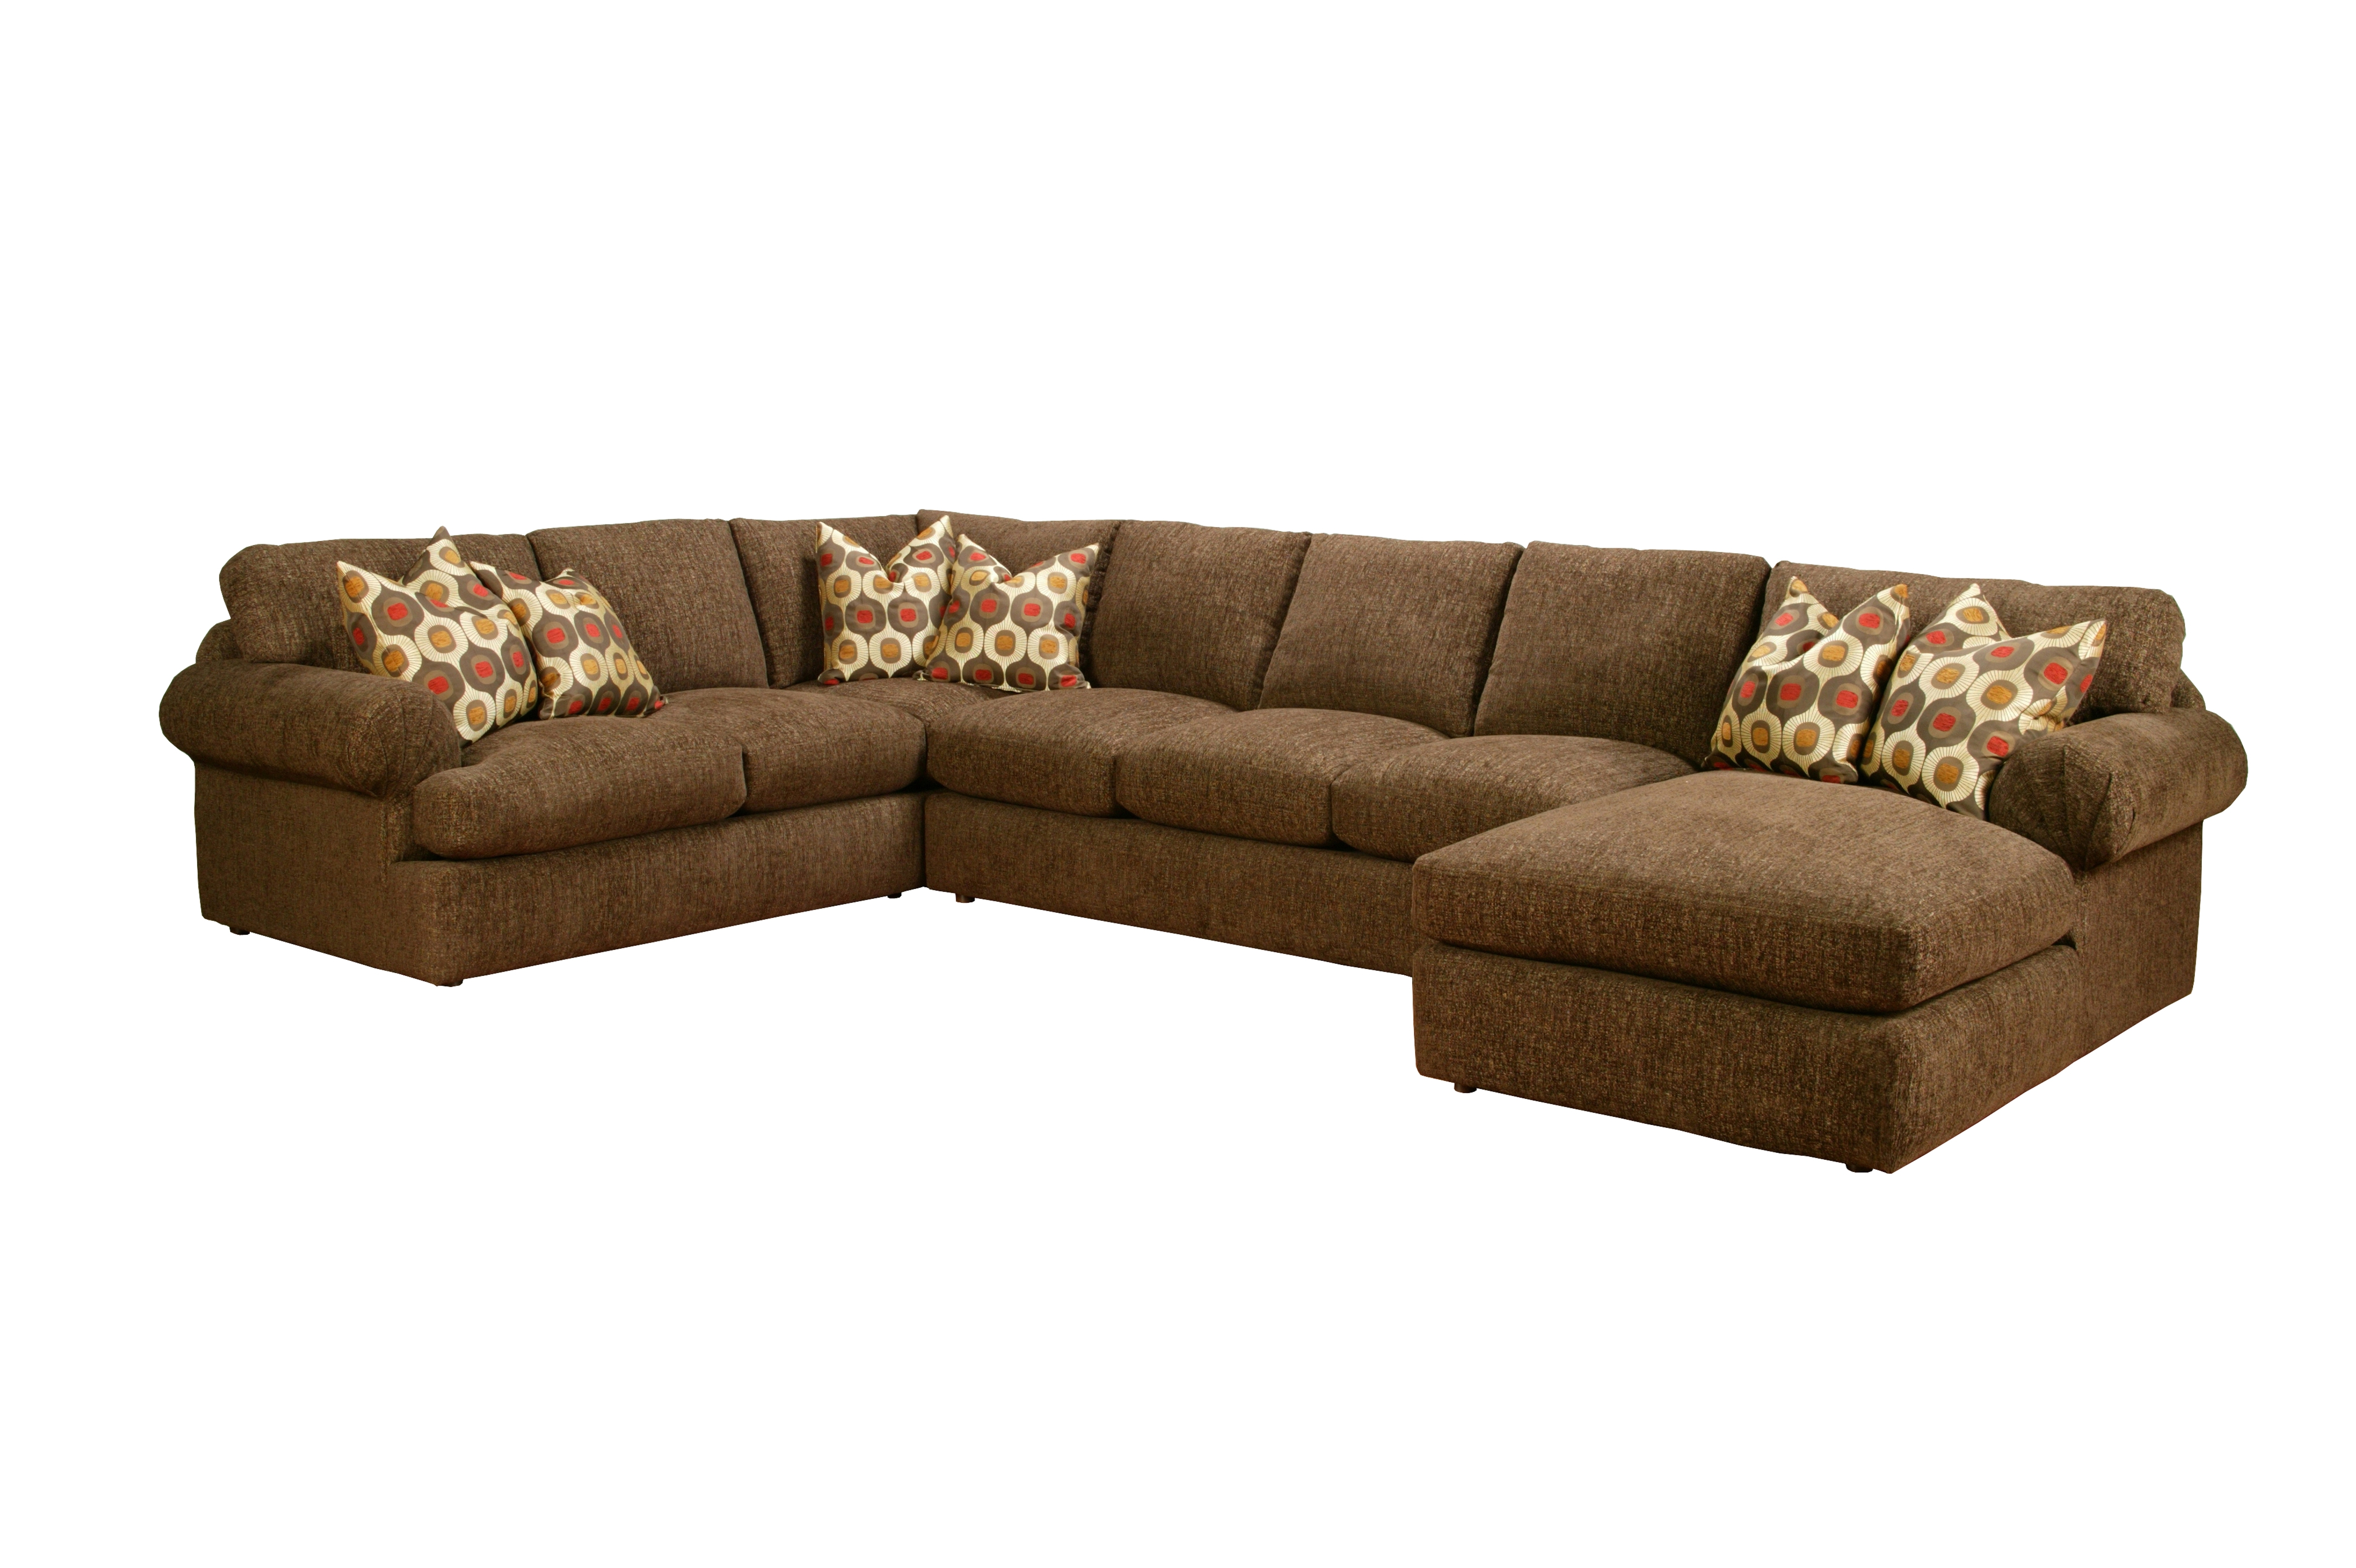 Robert Michael Fifth Ave Sofa Sectionals Phoenix Arizona Regarding 2017 Phoenix Arizona Sectional Sofas (View 9 of 15)